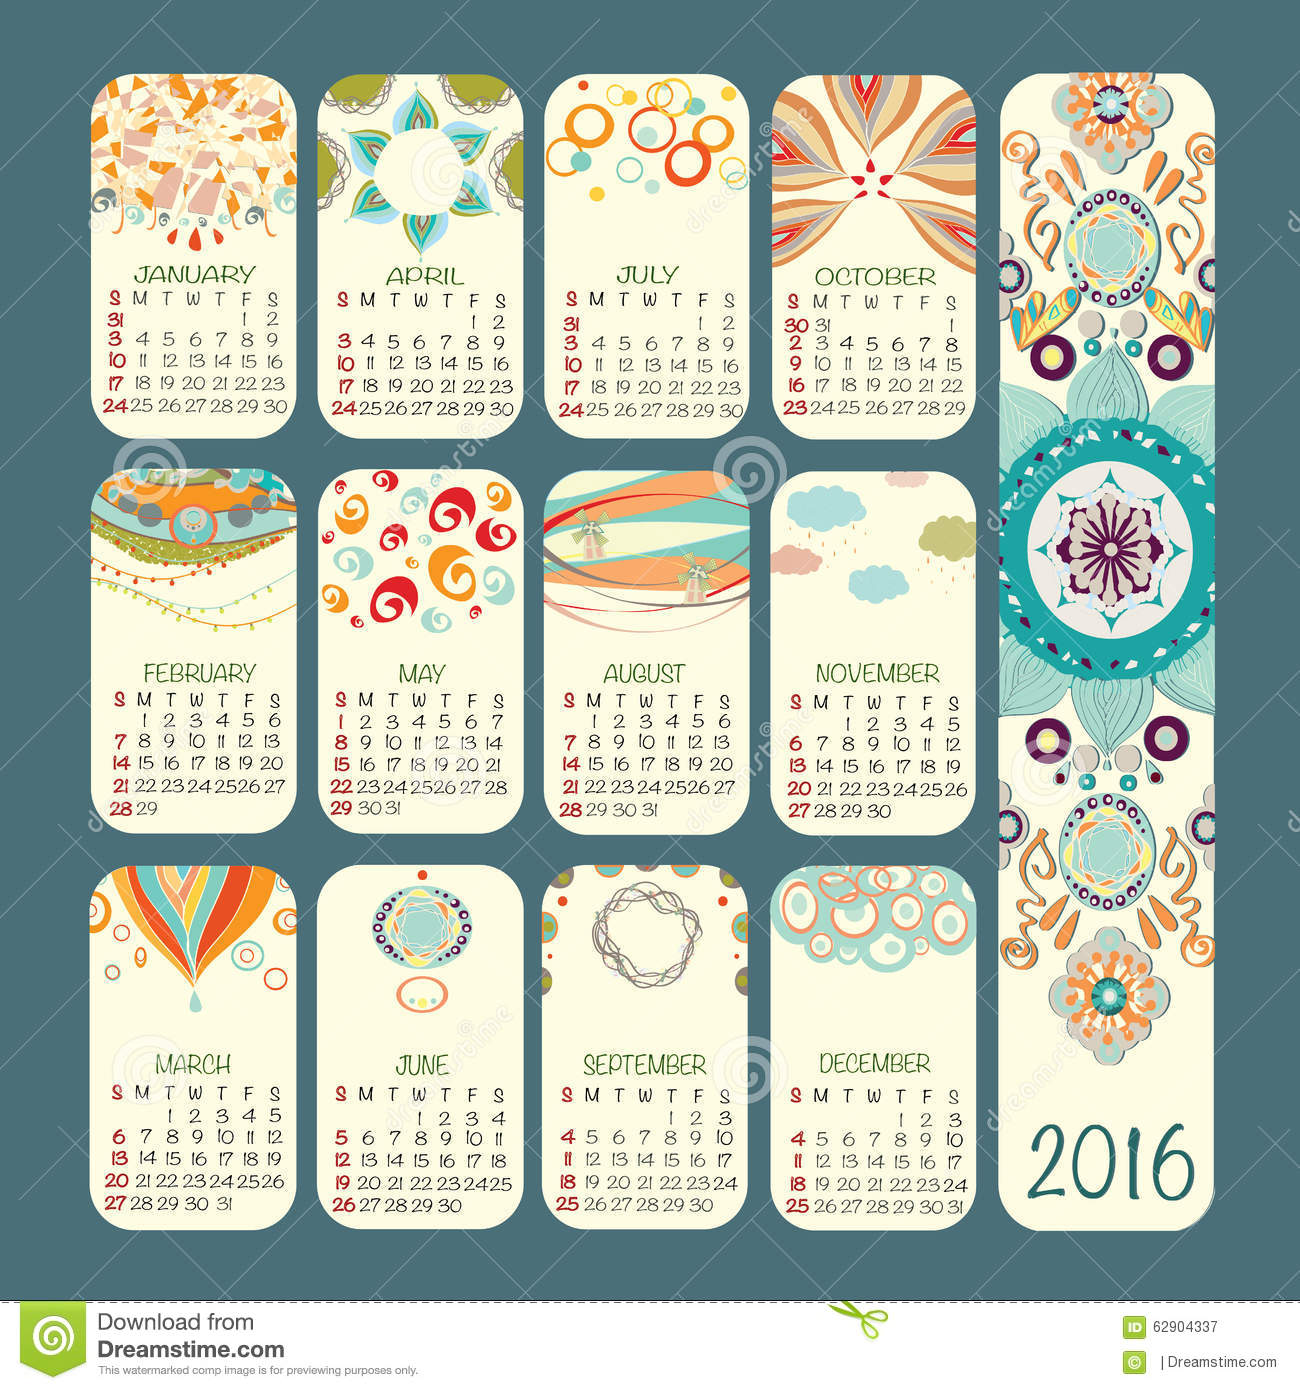 Color Of The Month February 2016: Calendar 2016 Vector Design. Week Starts Sunday. Stock